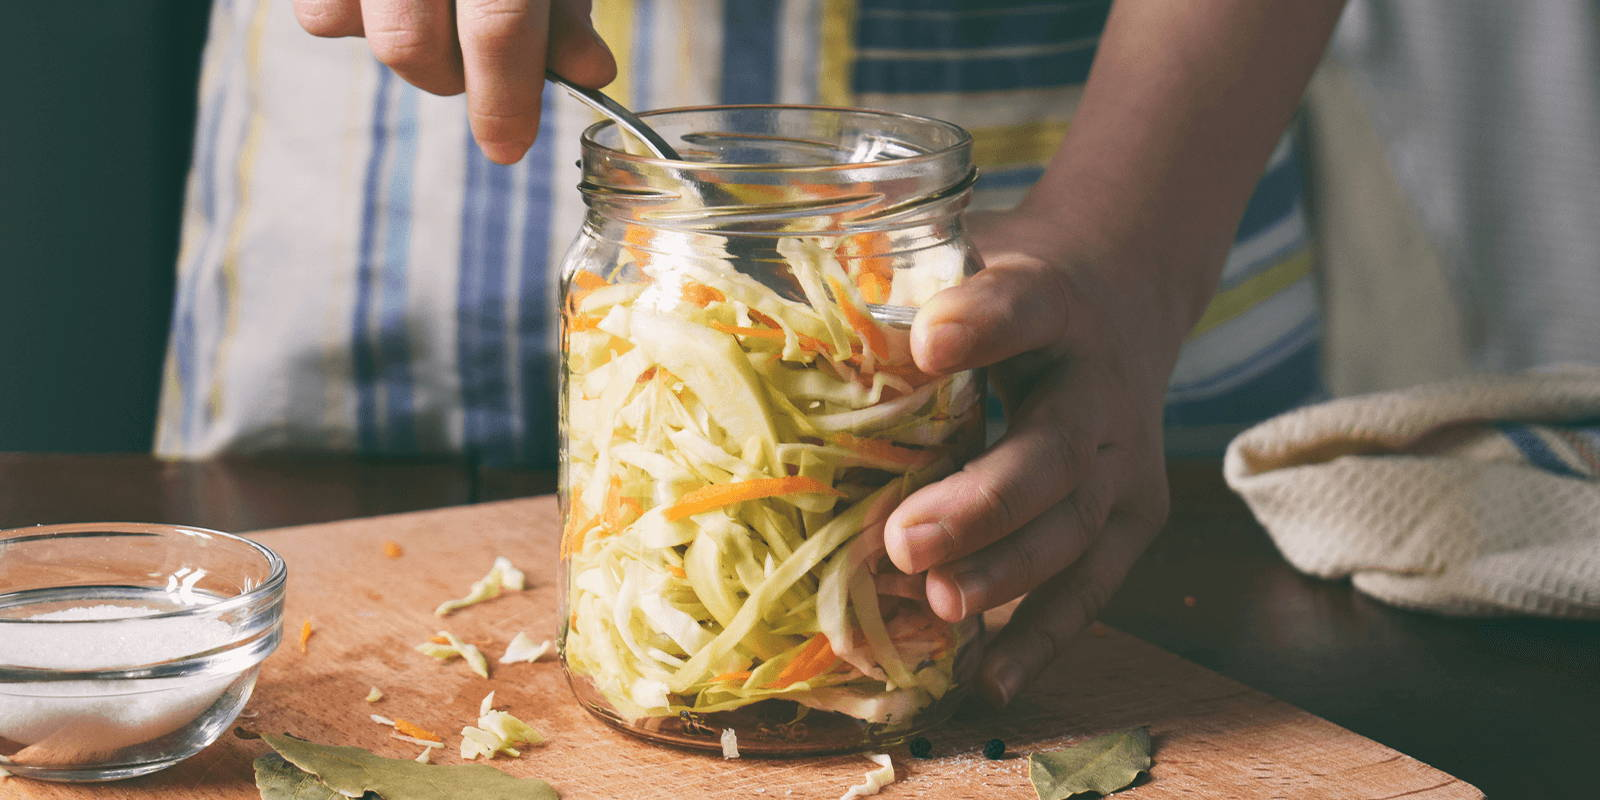 Woman scooping shredded cabbage out of a jar.